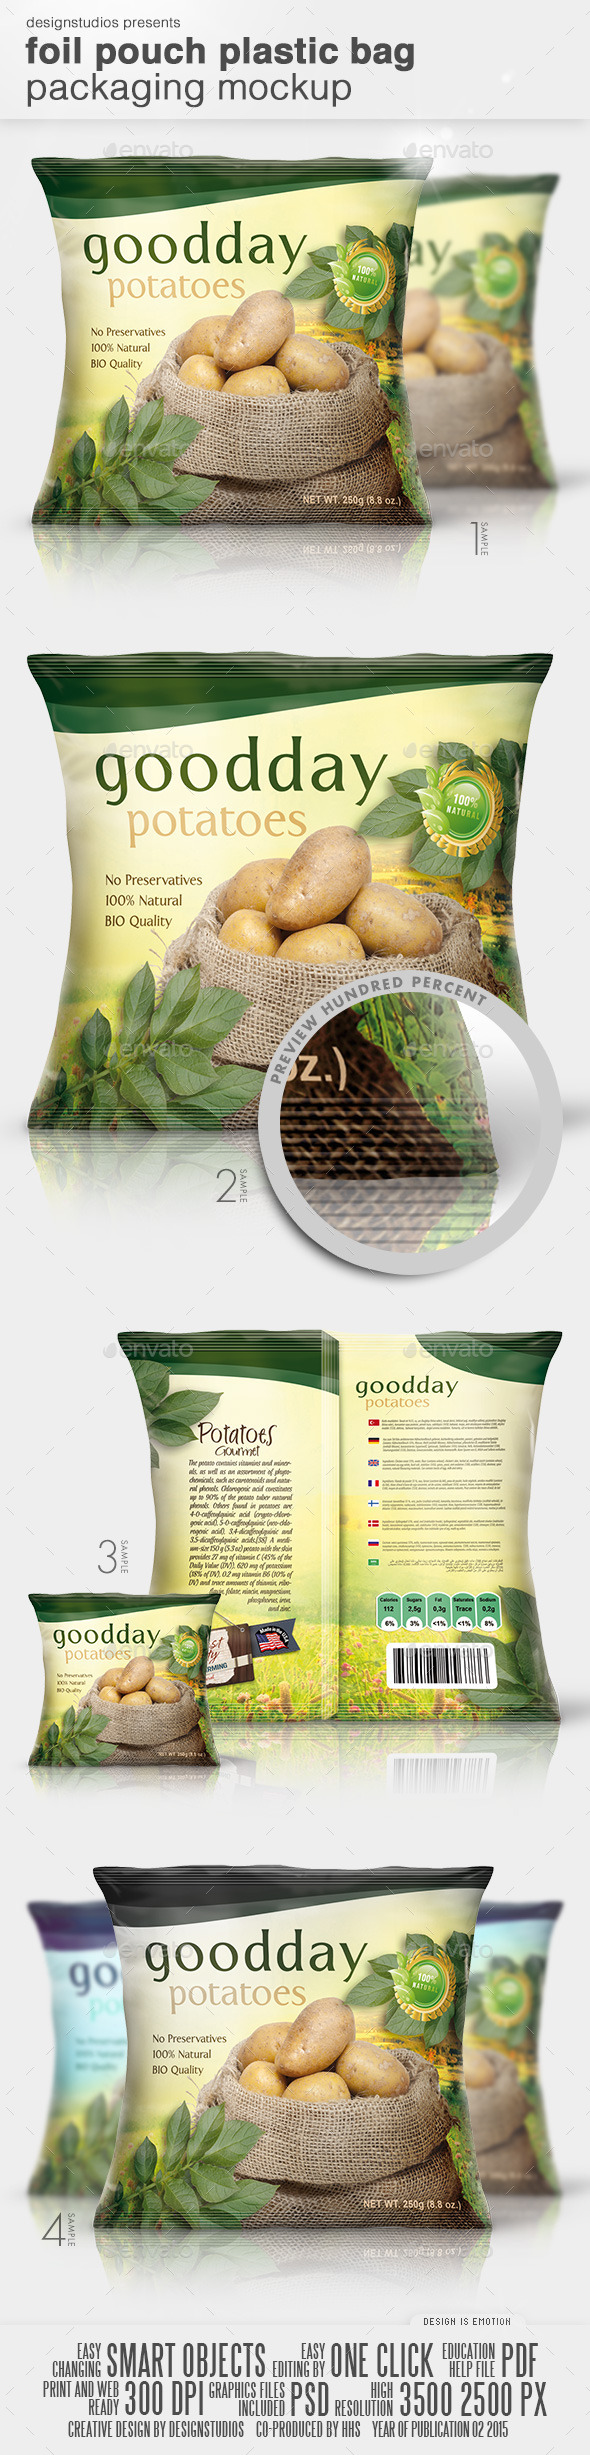 Aluminium foil pouch mockups, coffee paper pouch, food and milk pouch packaging mockups. Foil Pouch Plastic Bag Packaging Mock Up By Designstudios Graphicriver